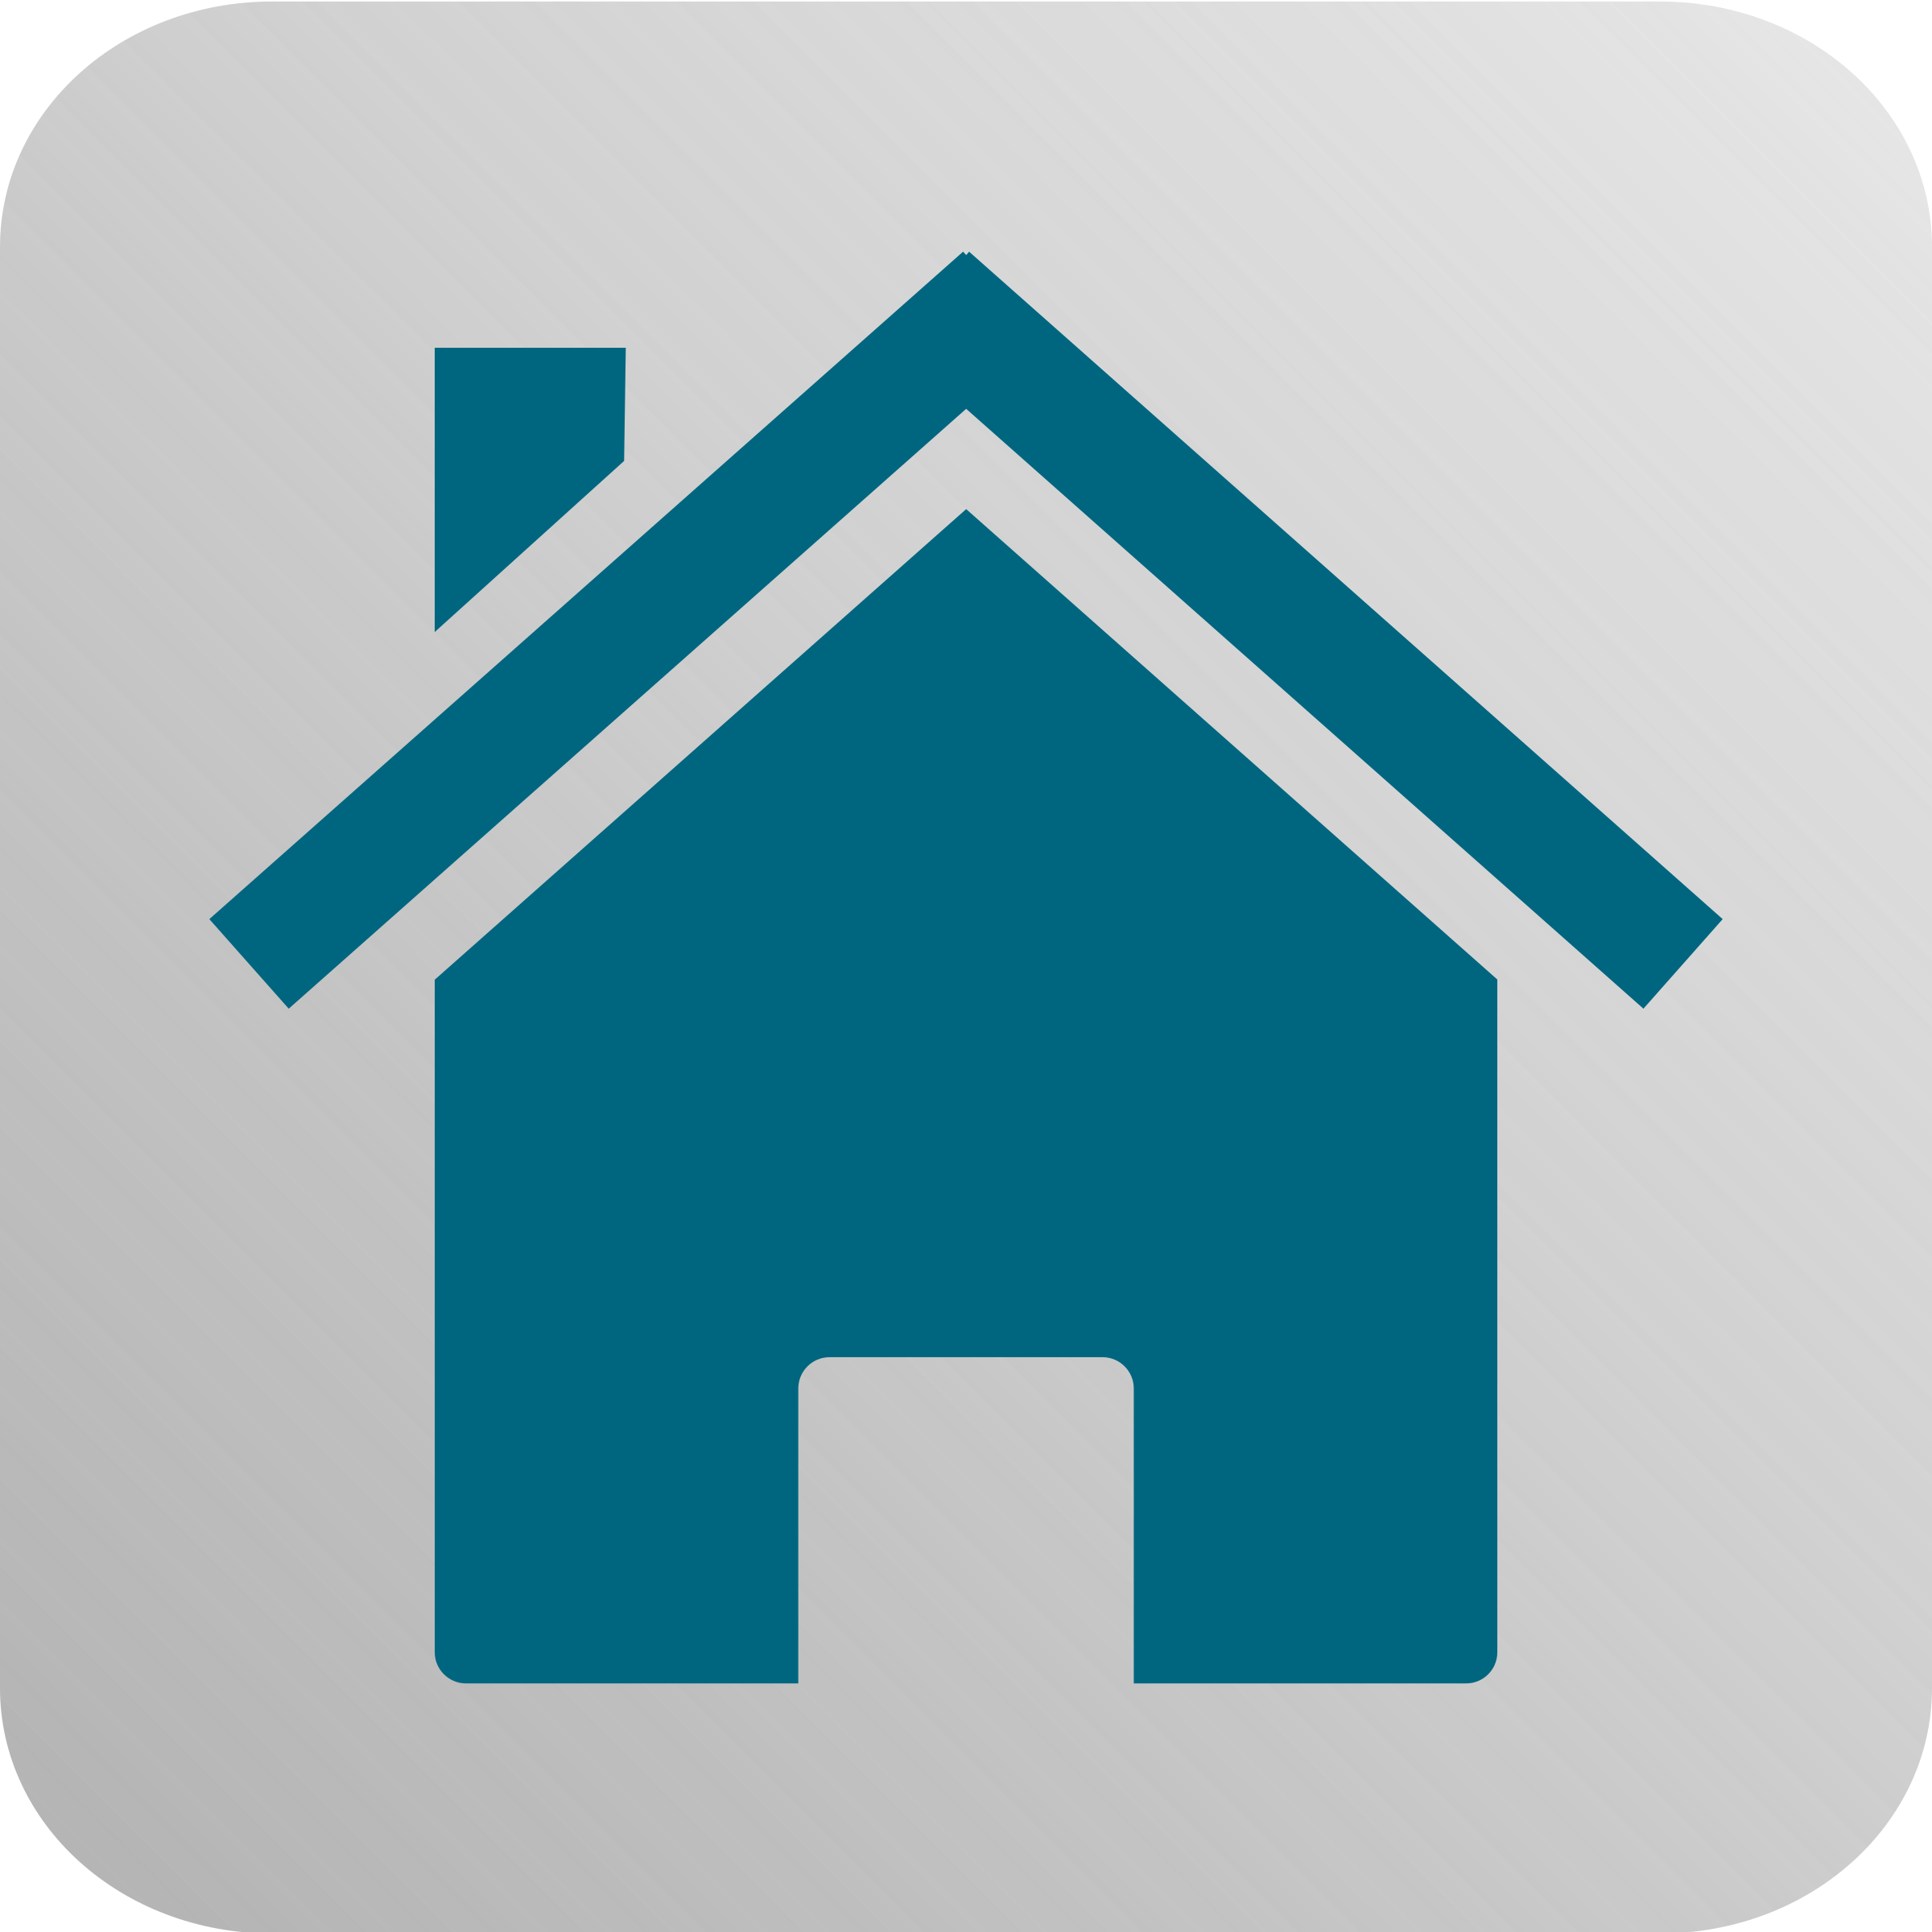 Home Icon by jphandrigan